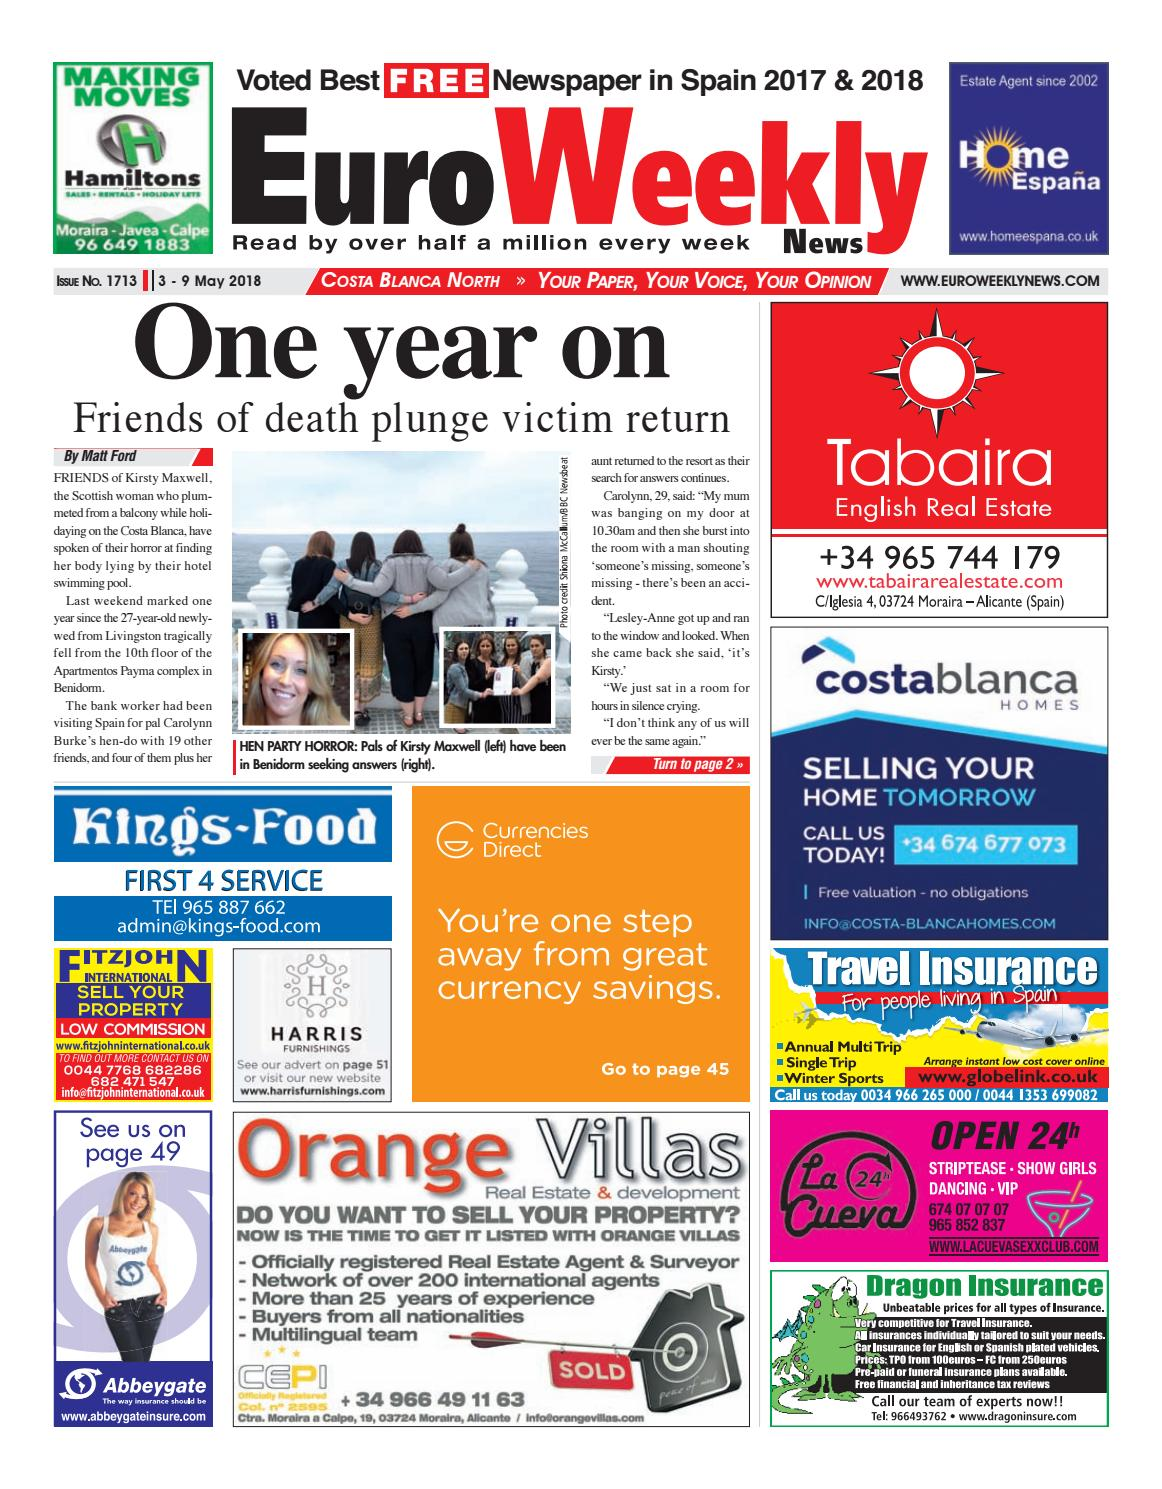 67a02ea982 Euro Weekly News - Costa Blanca North 3 - 9 May 2018 Issue 1713 by ...